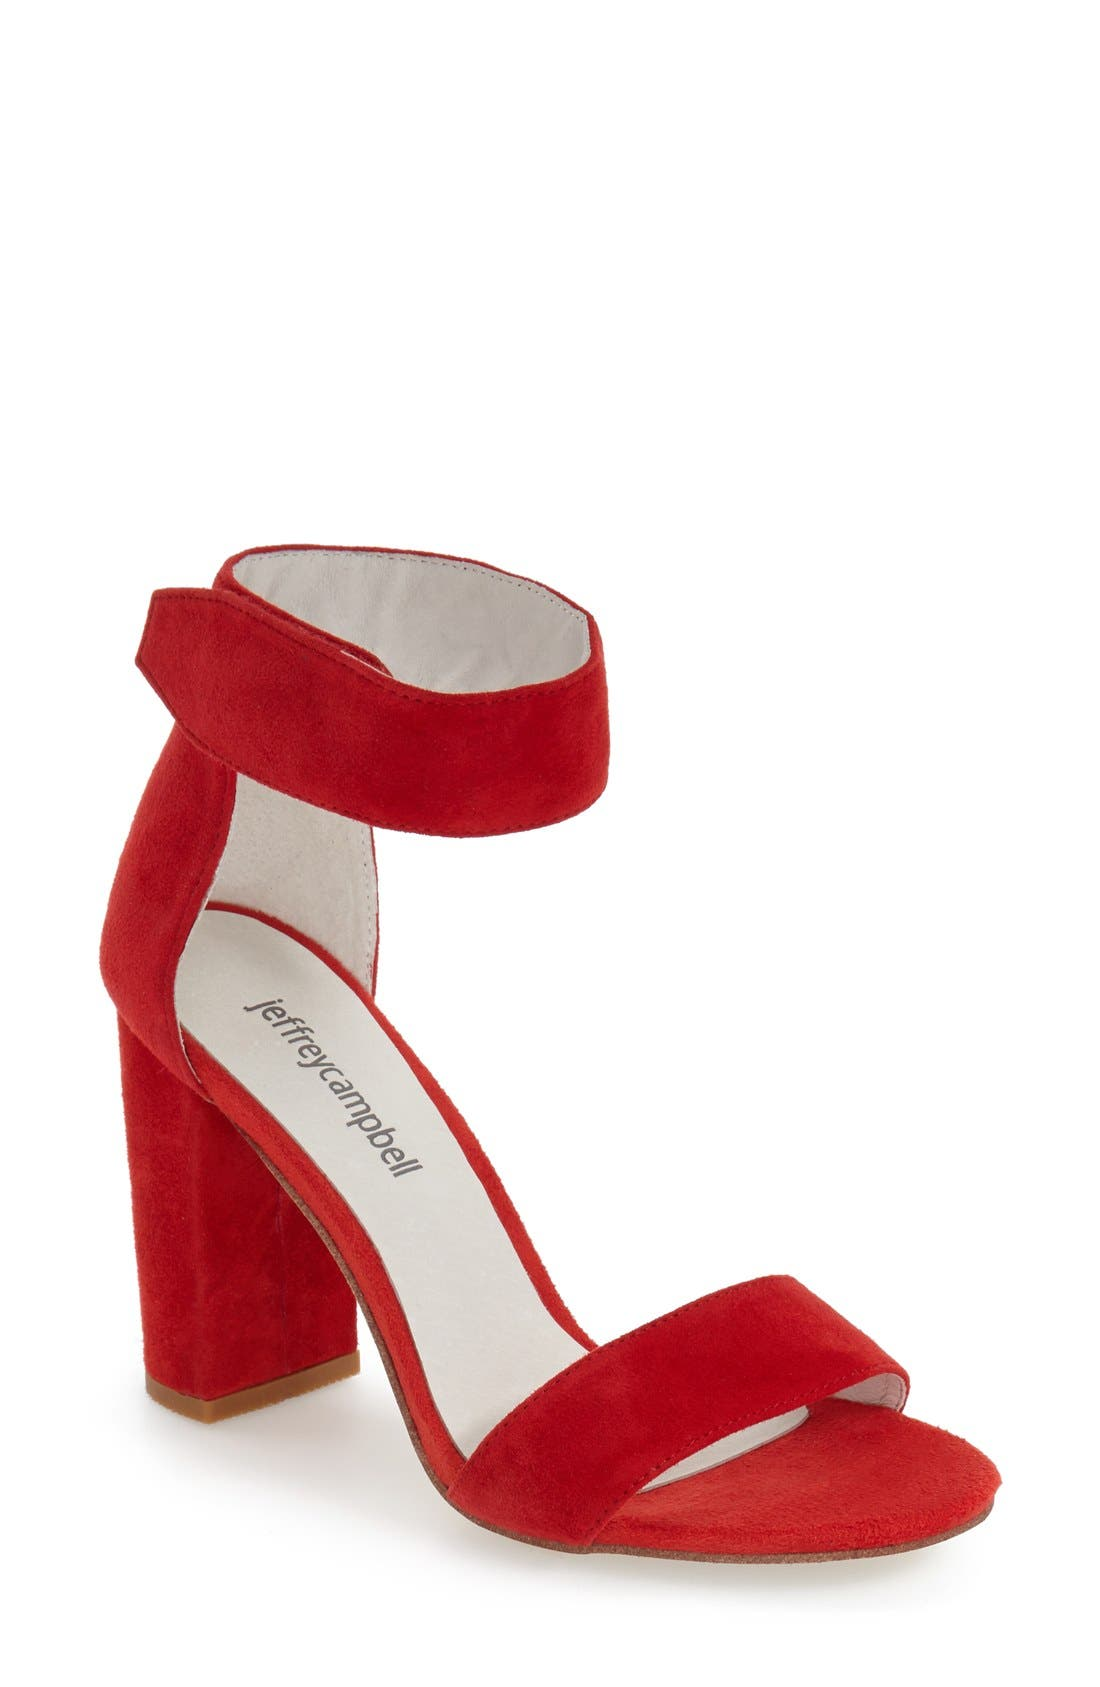 'Lindsay' Ankle Strap Sandal,                             Main thumbnail 11, color,